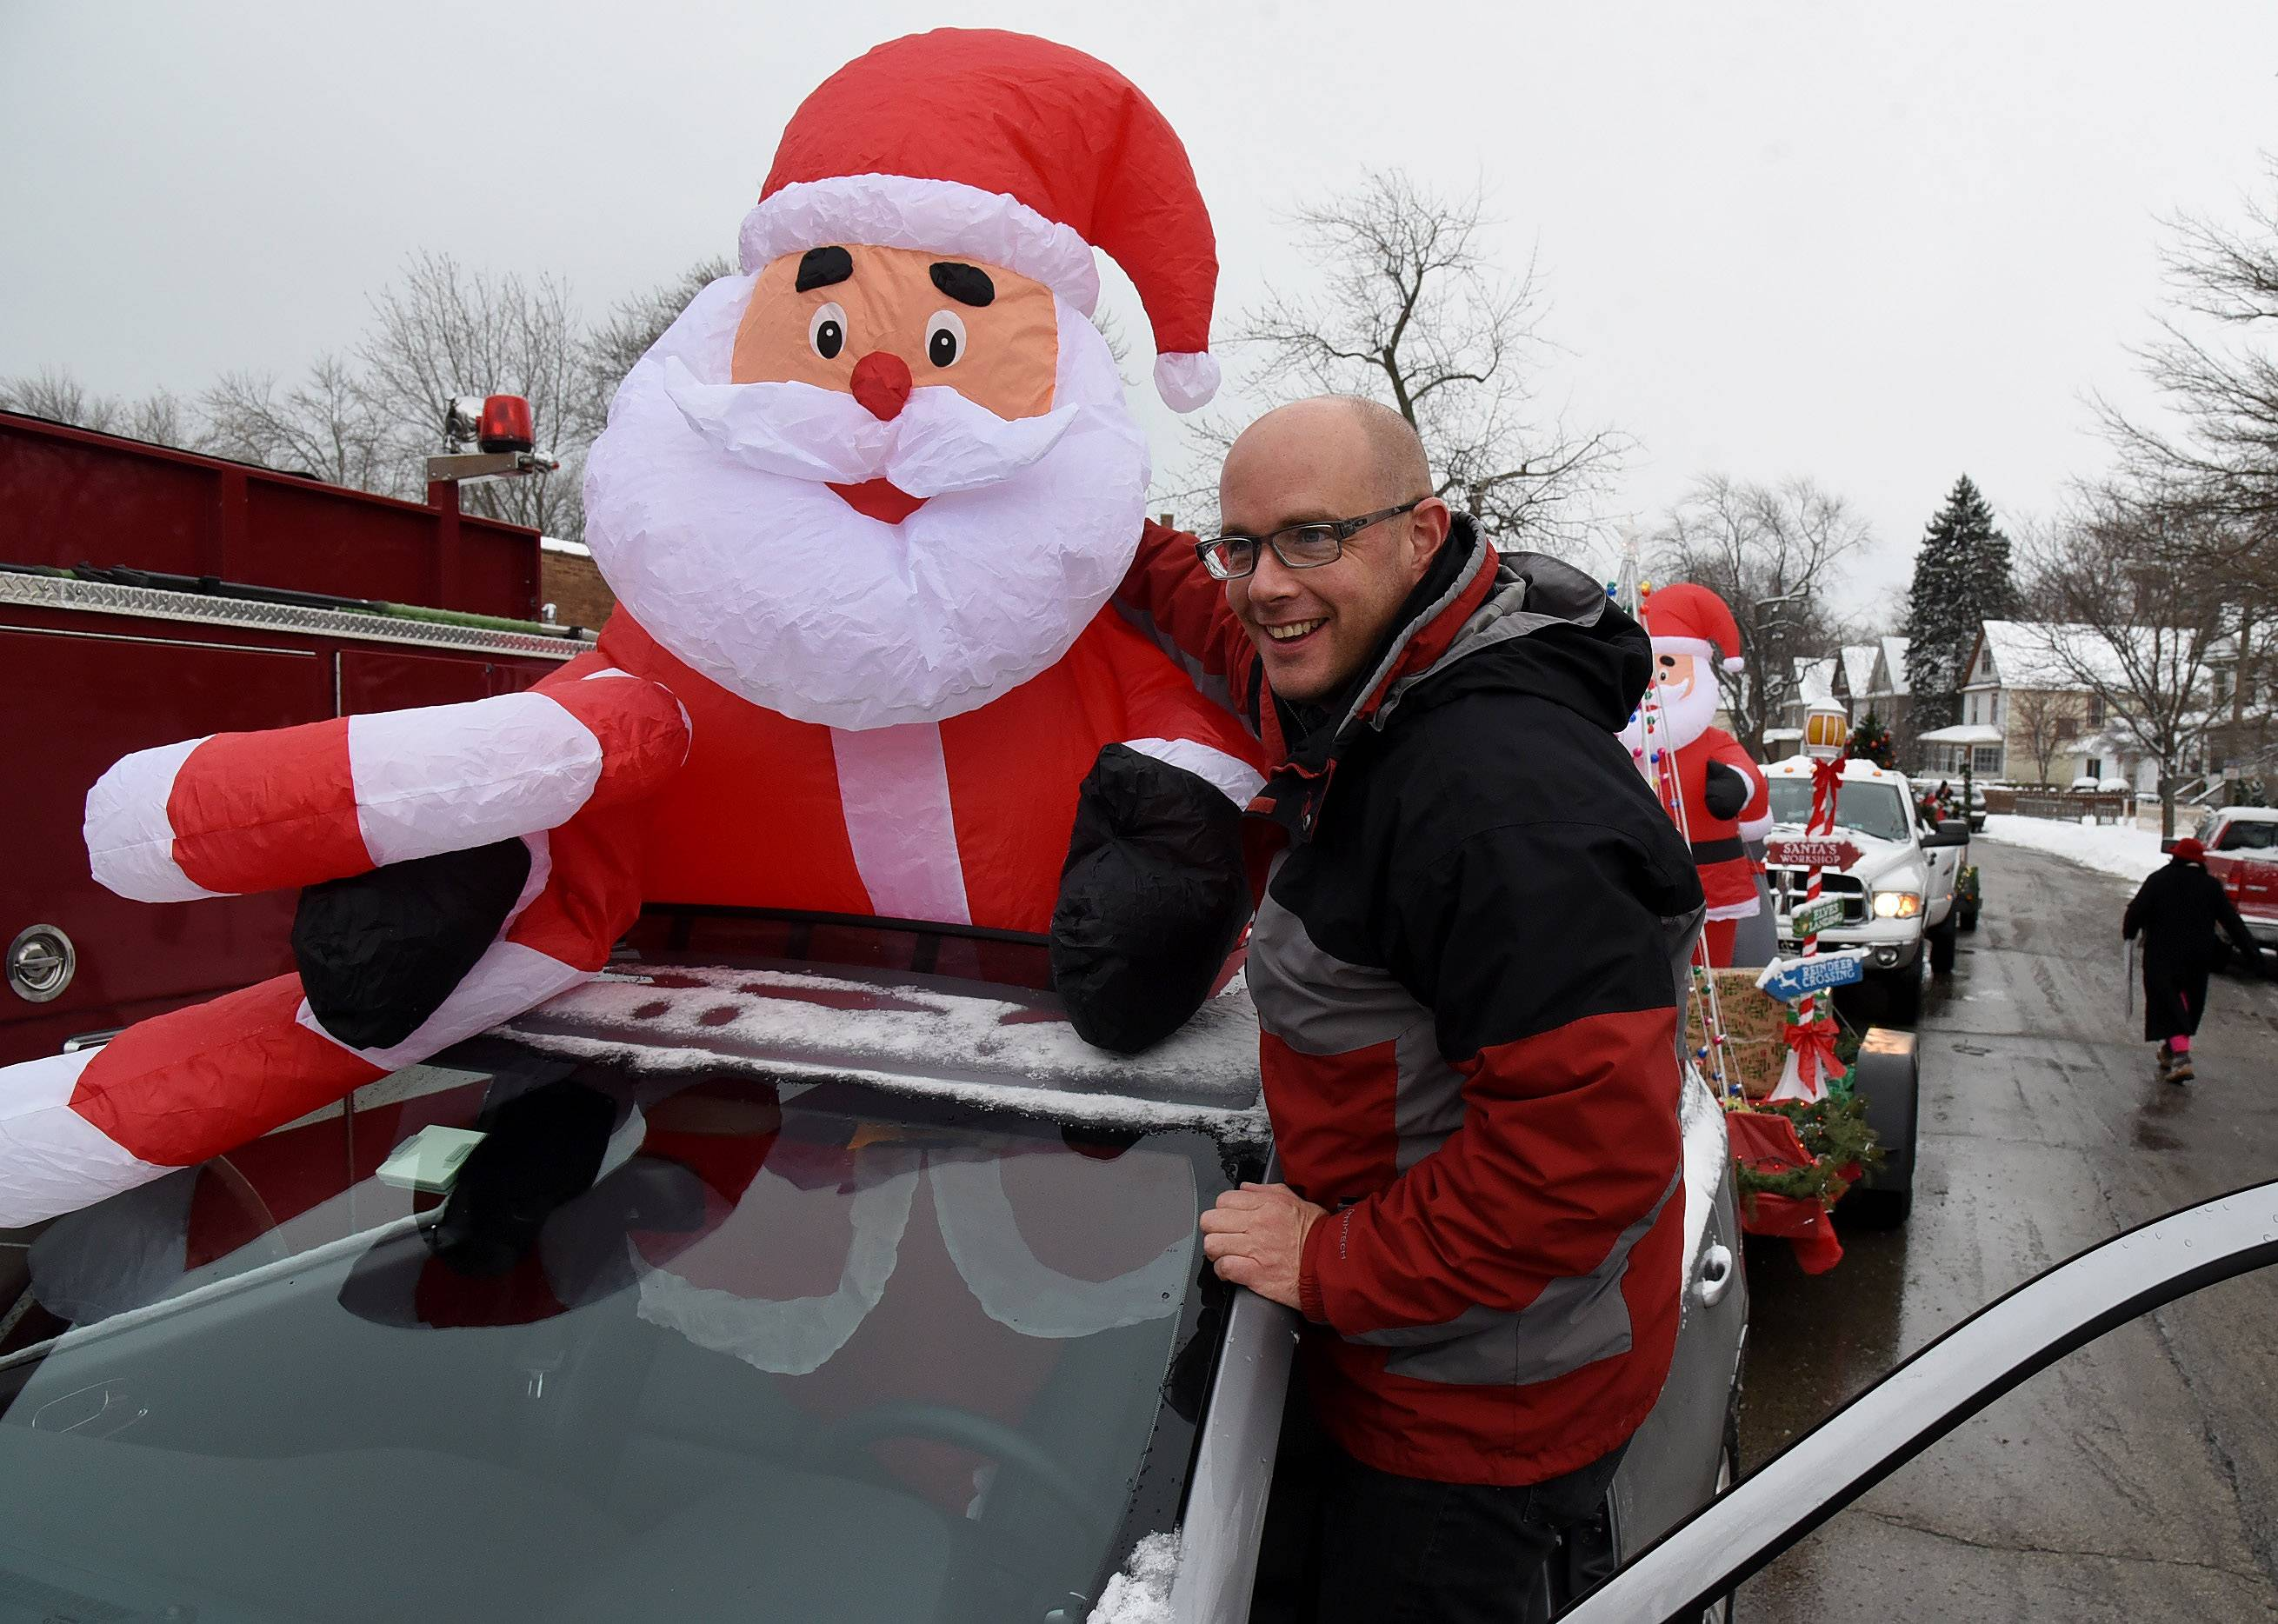 Christmas parade, toys and food giveaway in Waukegan